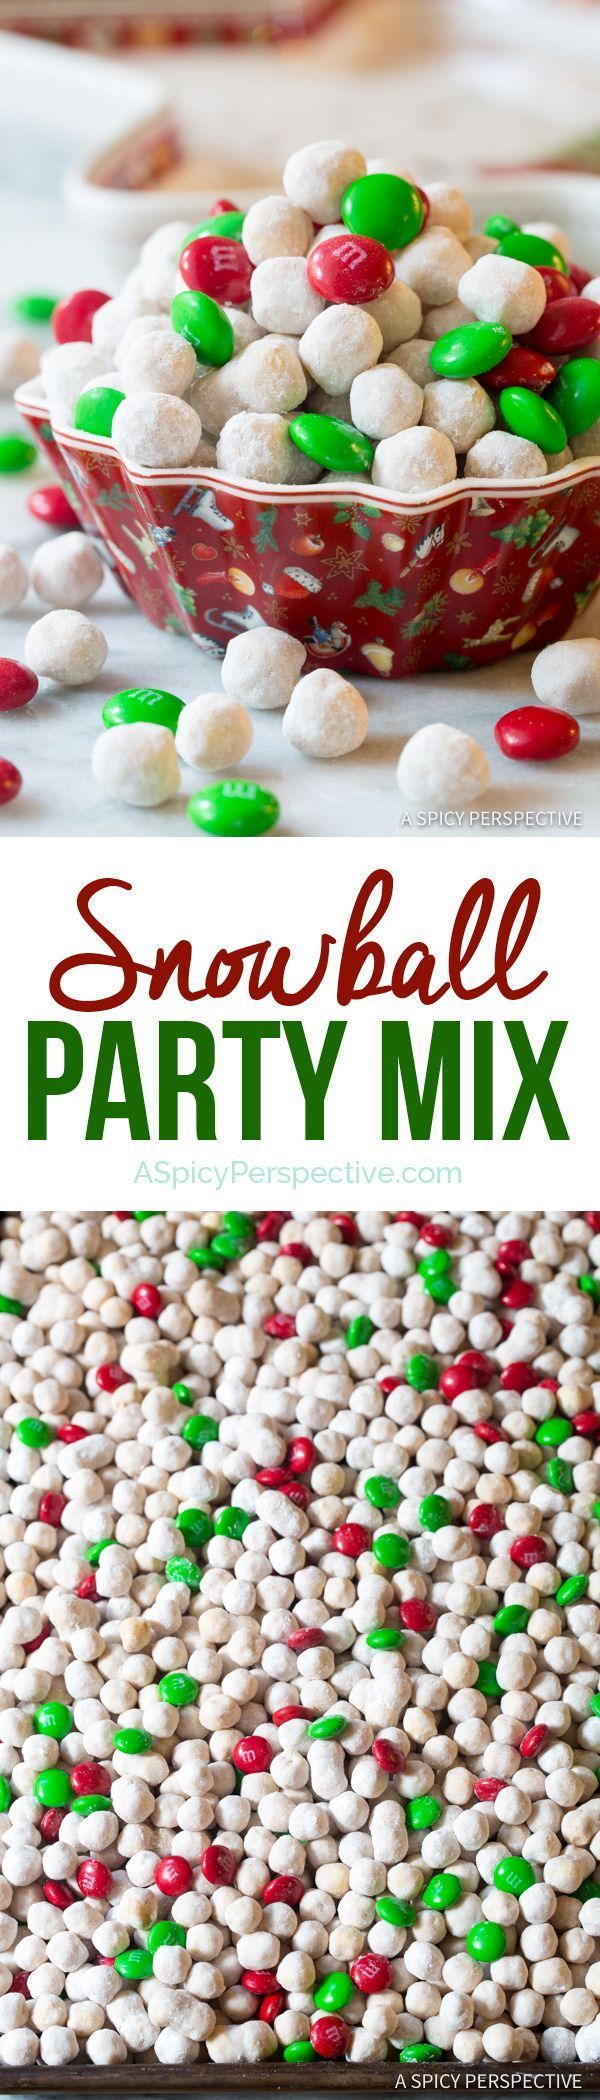 Festive Snowball Party Mix | http://ASpicyPerspective.com #christmas #ediblegifts